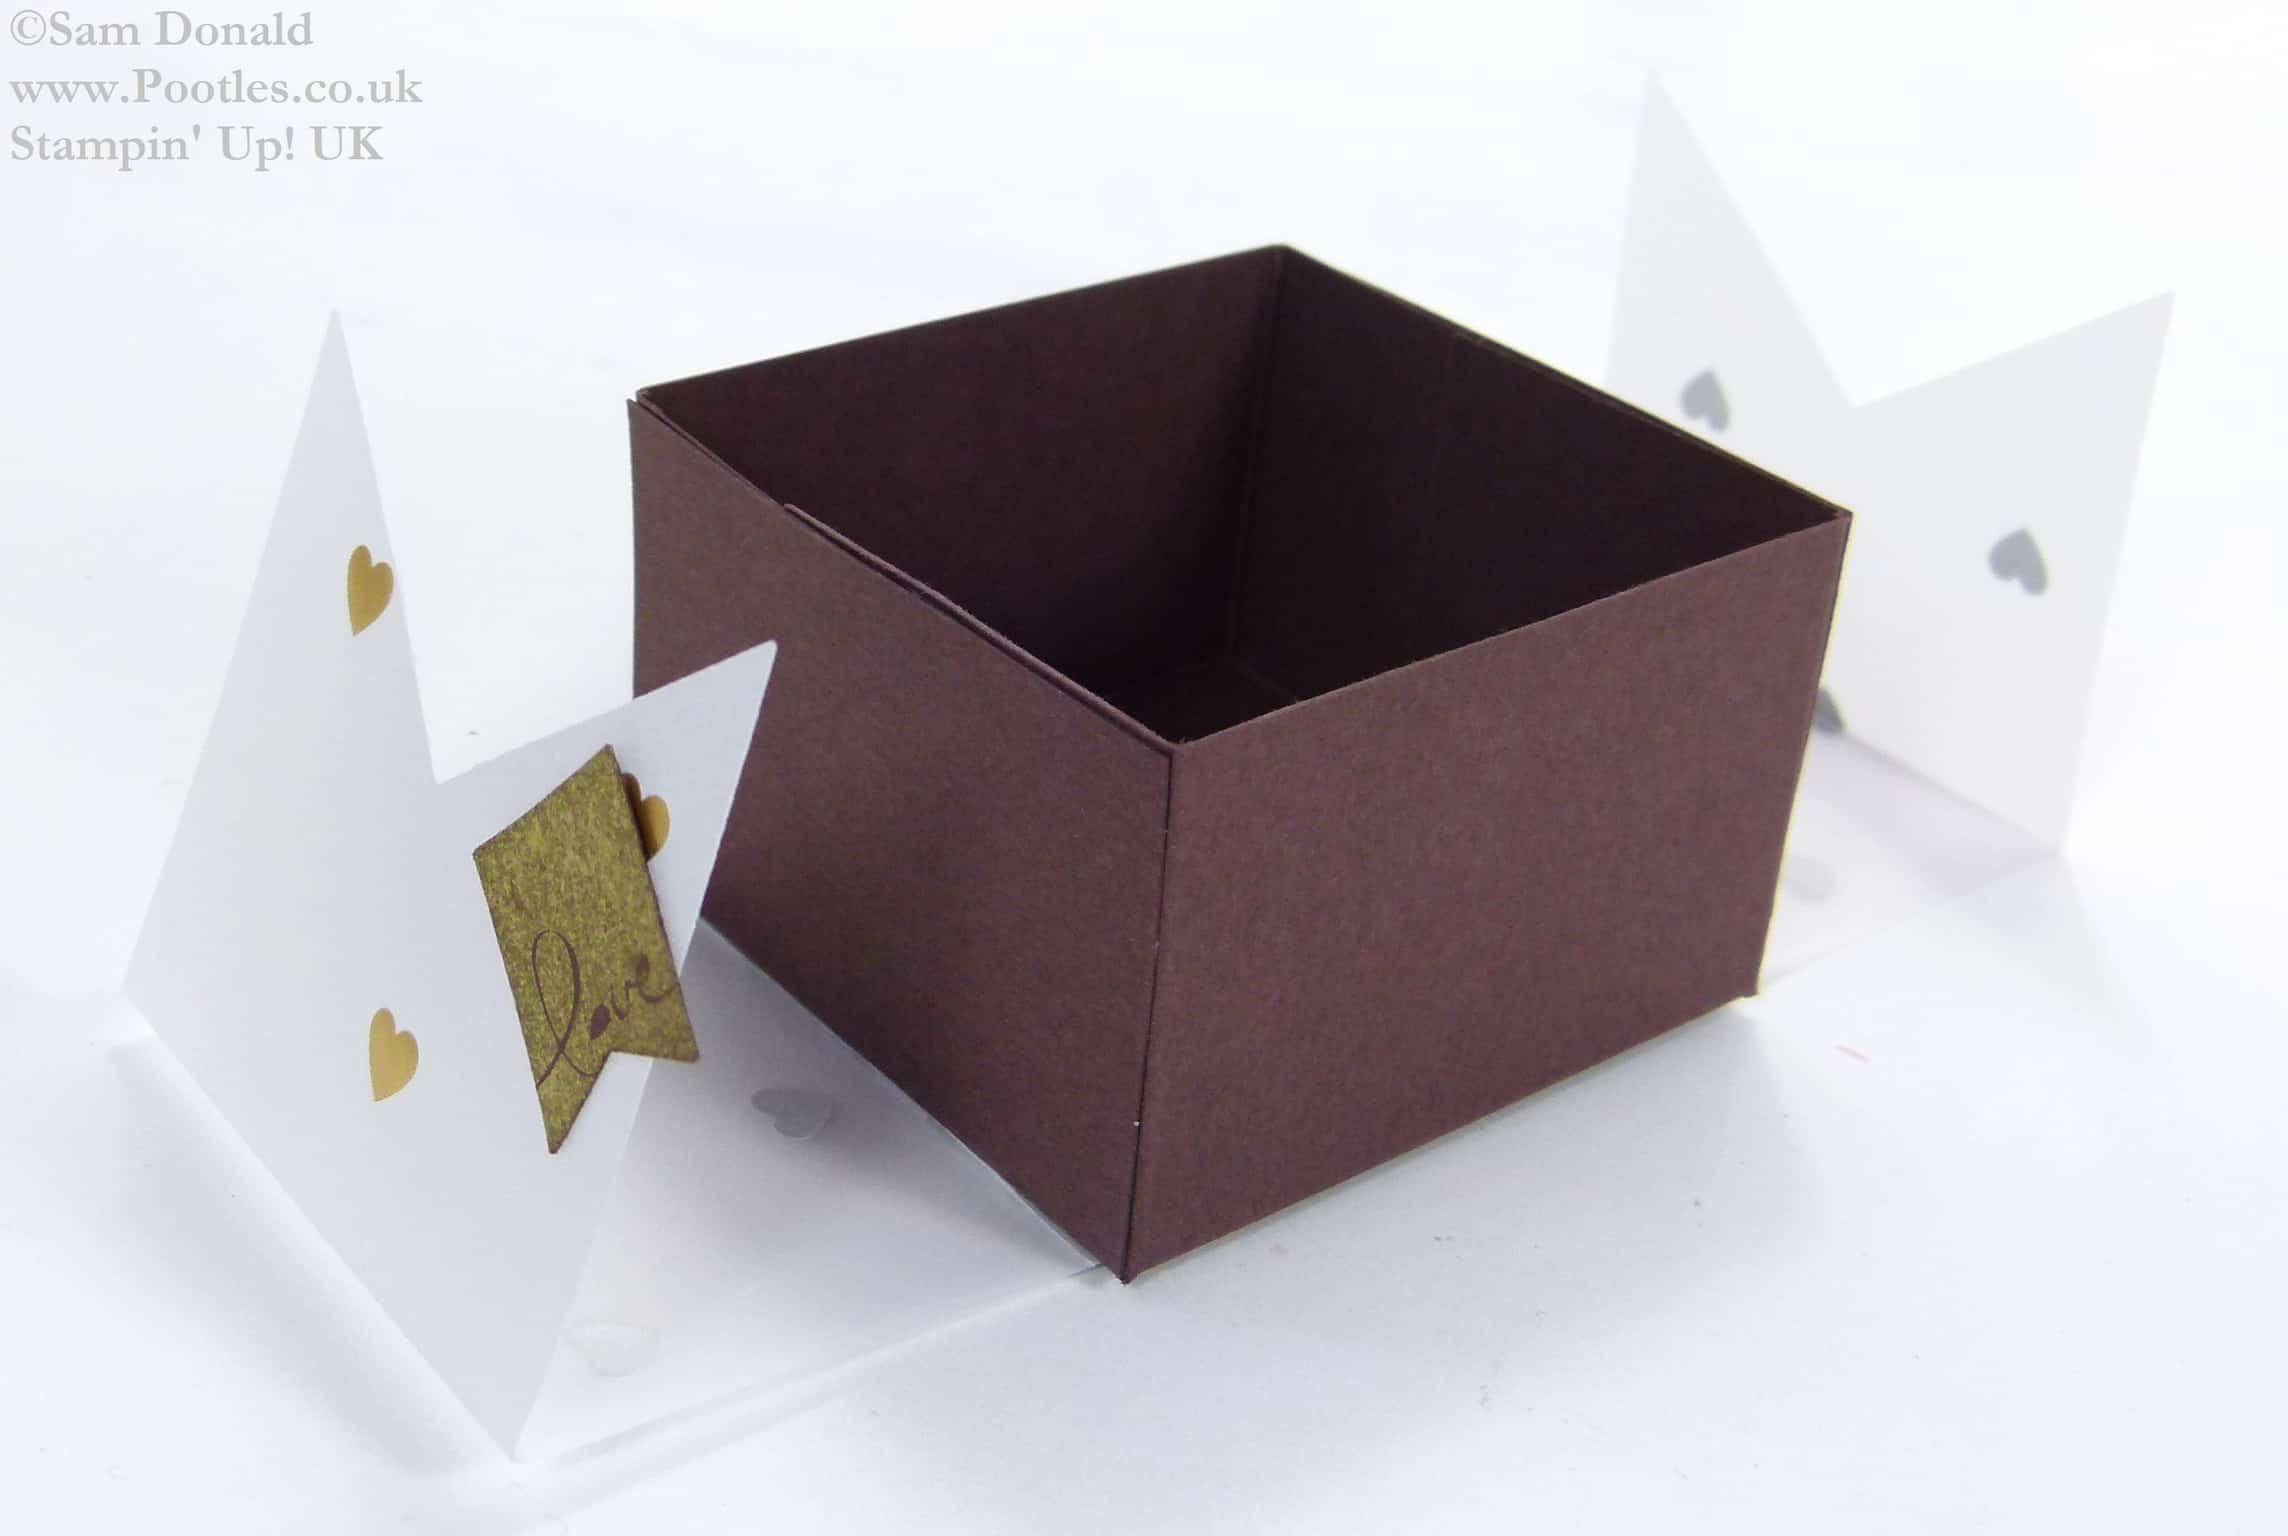 POOTLES Stampin Up UK SPRINGWATCH Folded Vellum Chocolate Truffle Box Tutorial 3